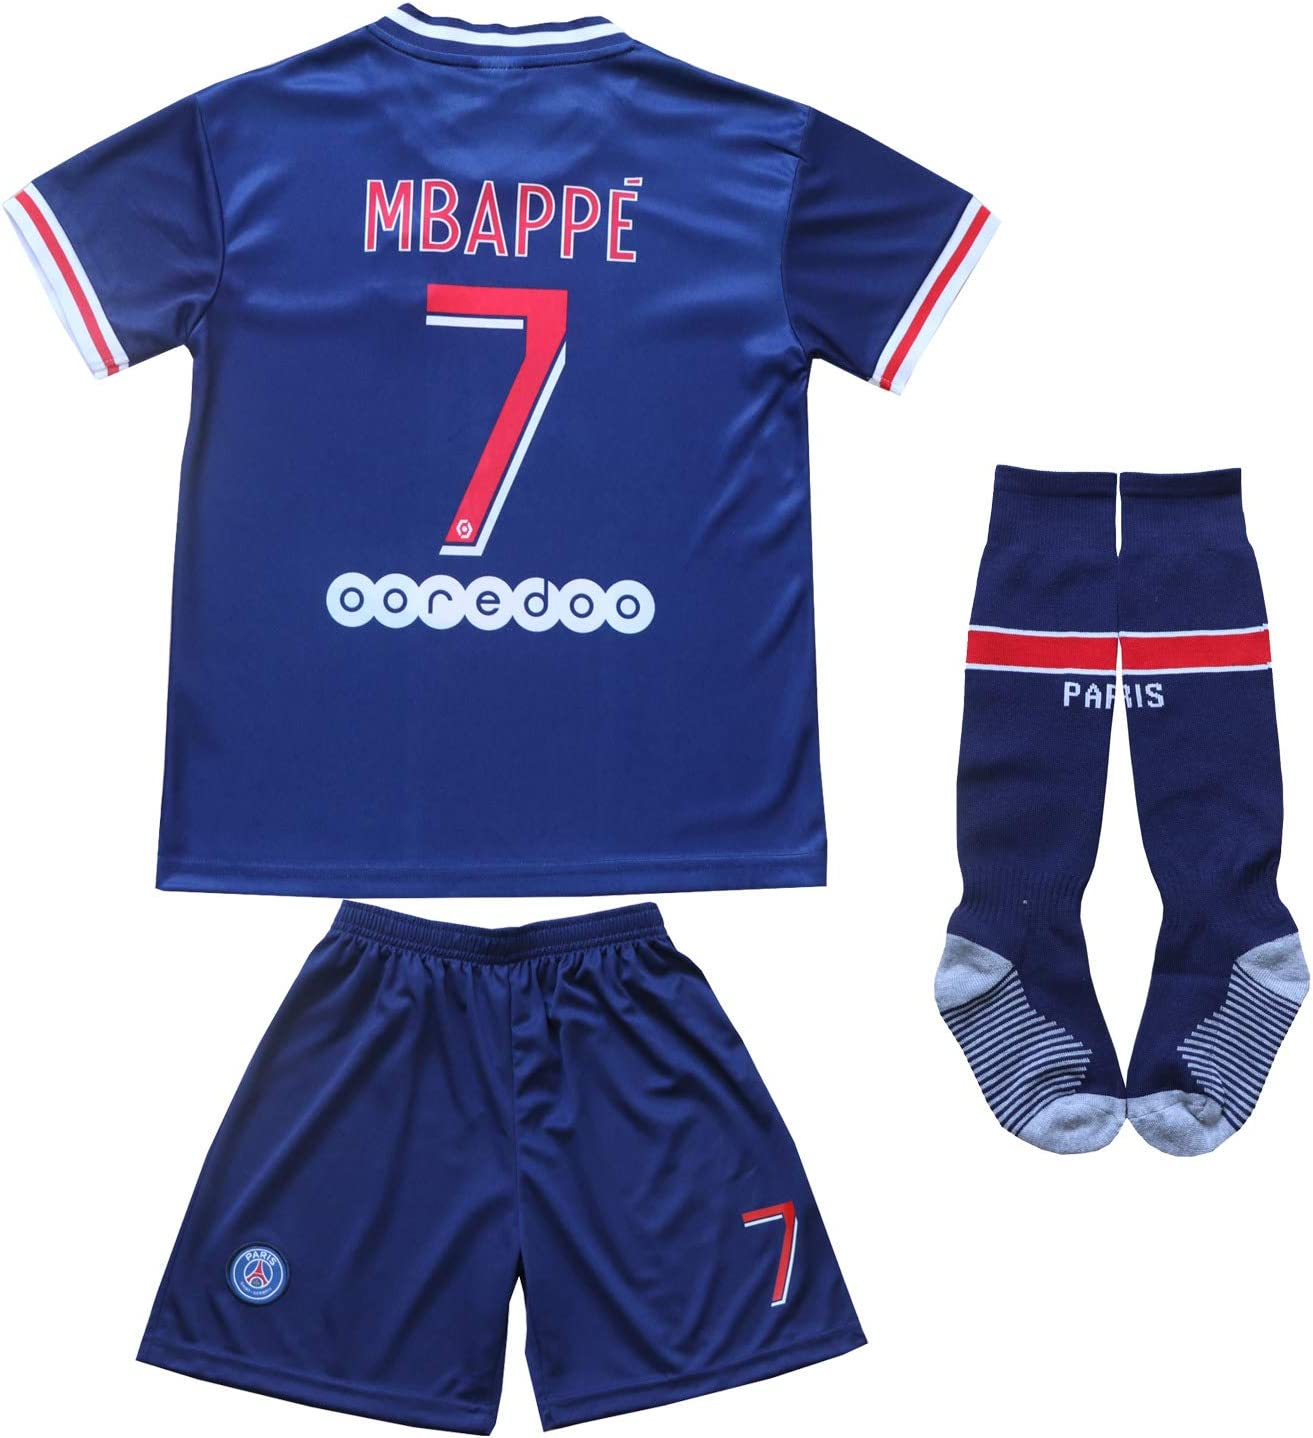 KID BOX Paris Home Football Soccer Kids Jersey Shorts Socks Set Youth Sizes